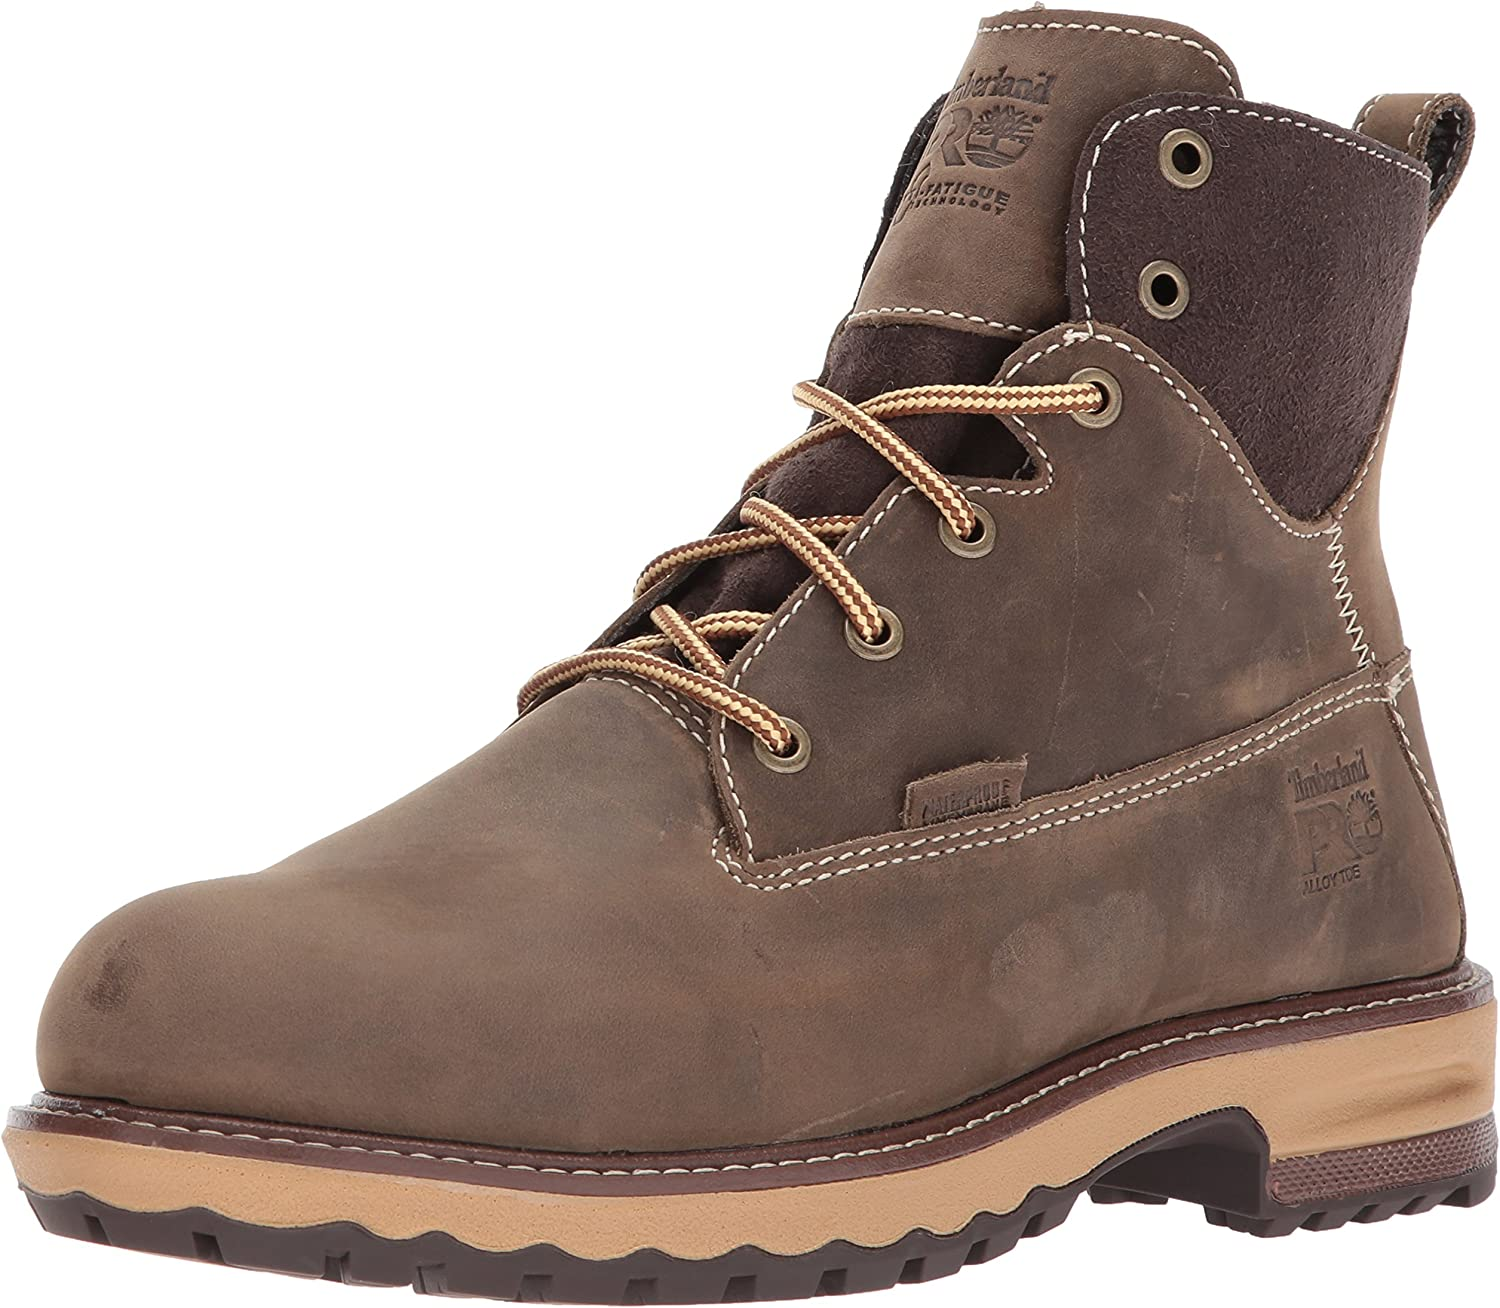 Timberland PRO Chaussure Femme 6 in Hightower Al WP, 37